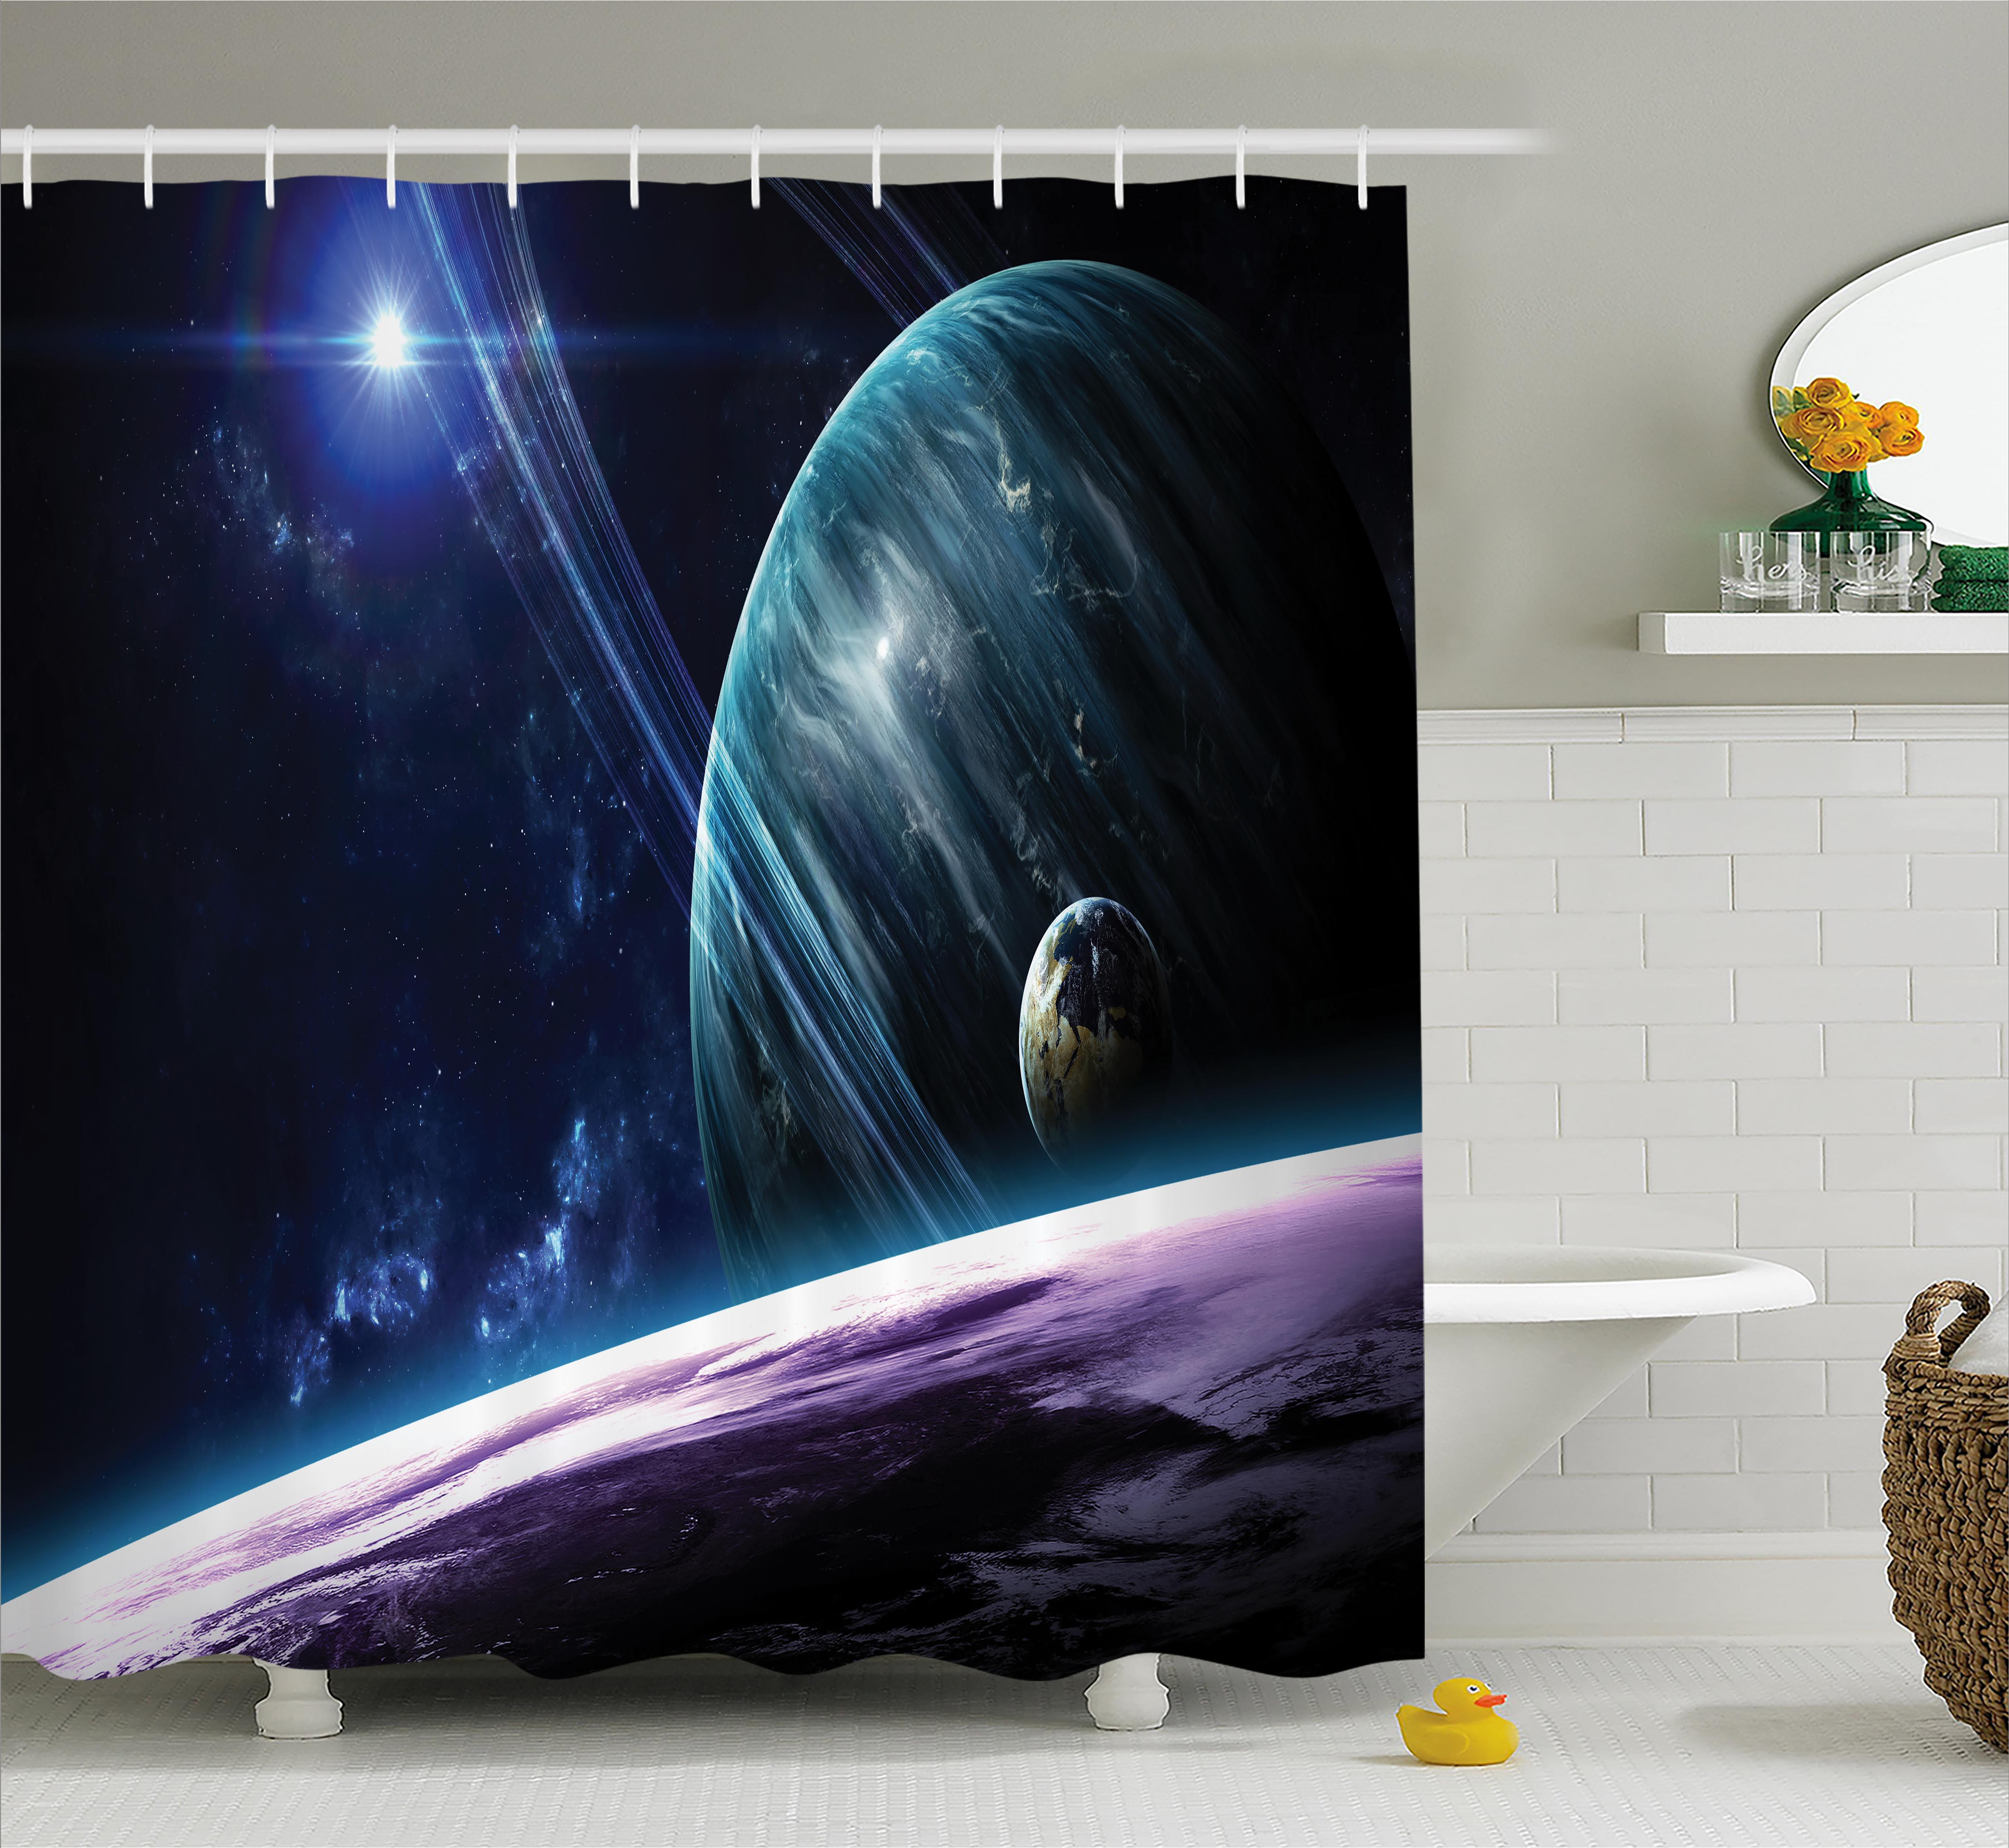 Space Shower Curtain, Universe With Planets And Dynamic Luminous Effects  Celestial Body Astronomy Print,